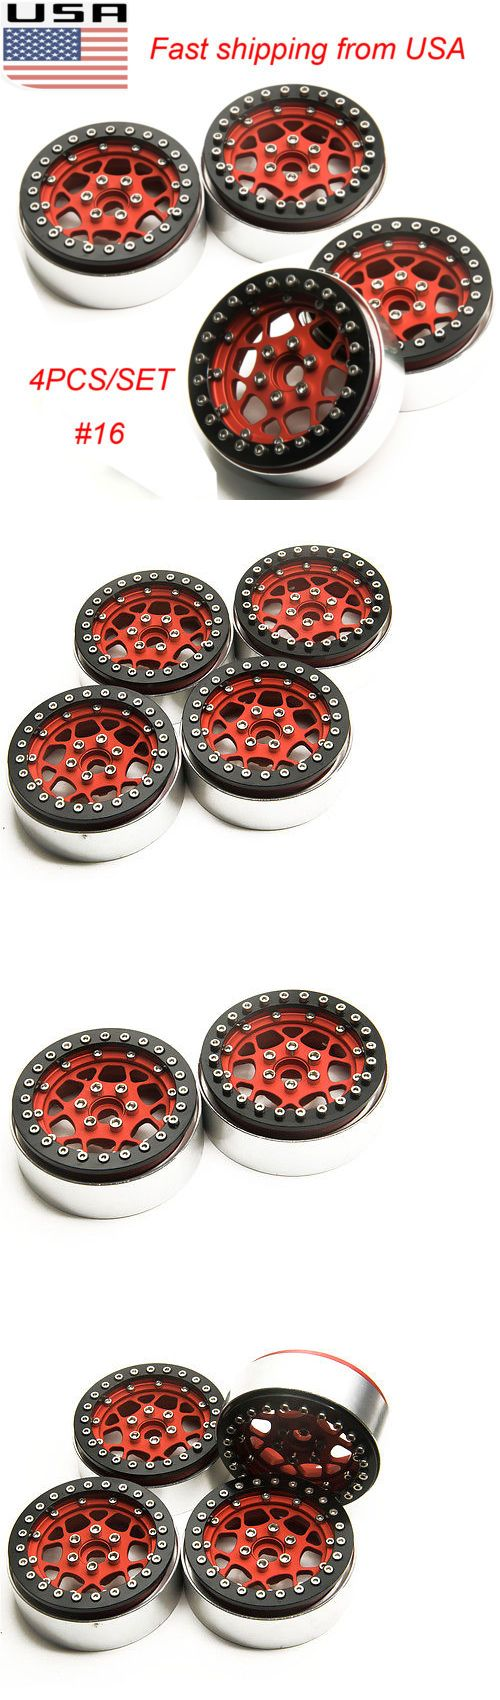 Wheels Tires Rims and Hubs 182201: 4Pcs 2.2 Alloy Beadlock Wheel Rims W Hubs For Axial Wraith 1:10 Rc Crawler Us -> BUY IT NOW ONLY: $55.99 on eBay!